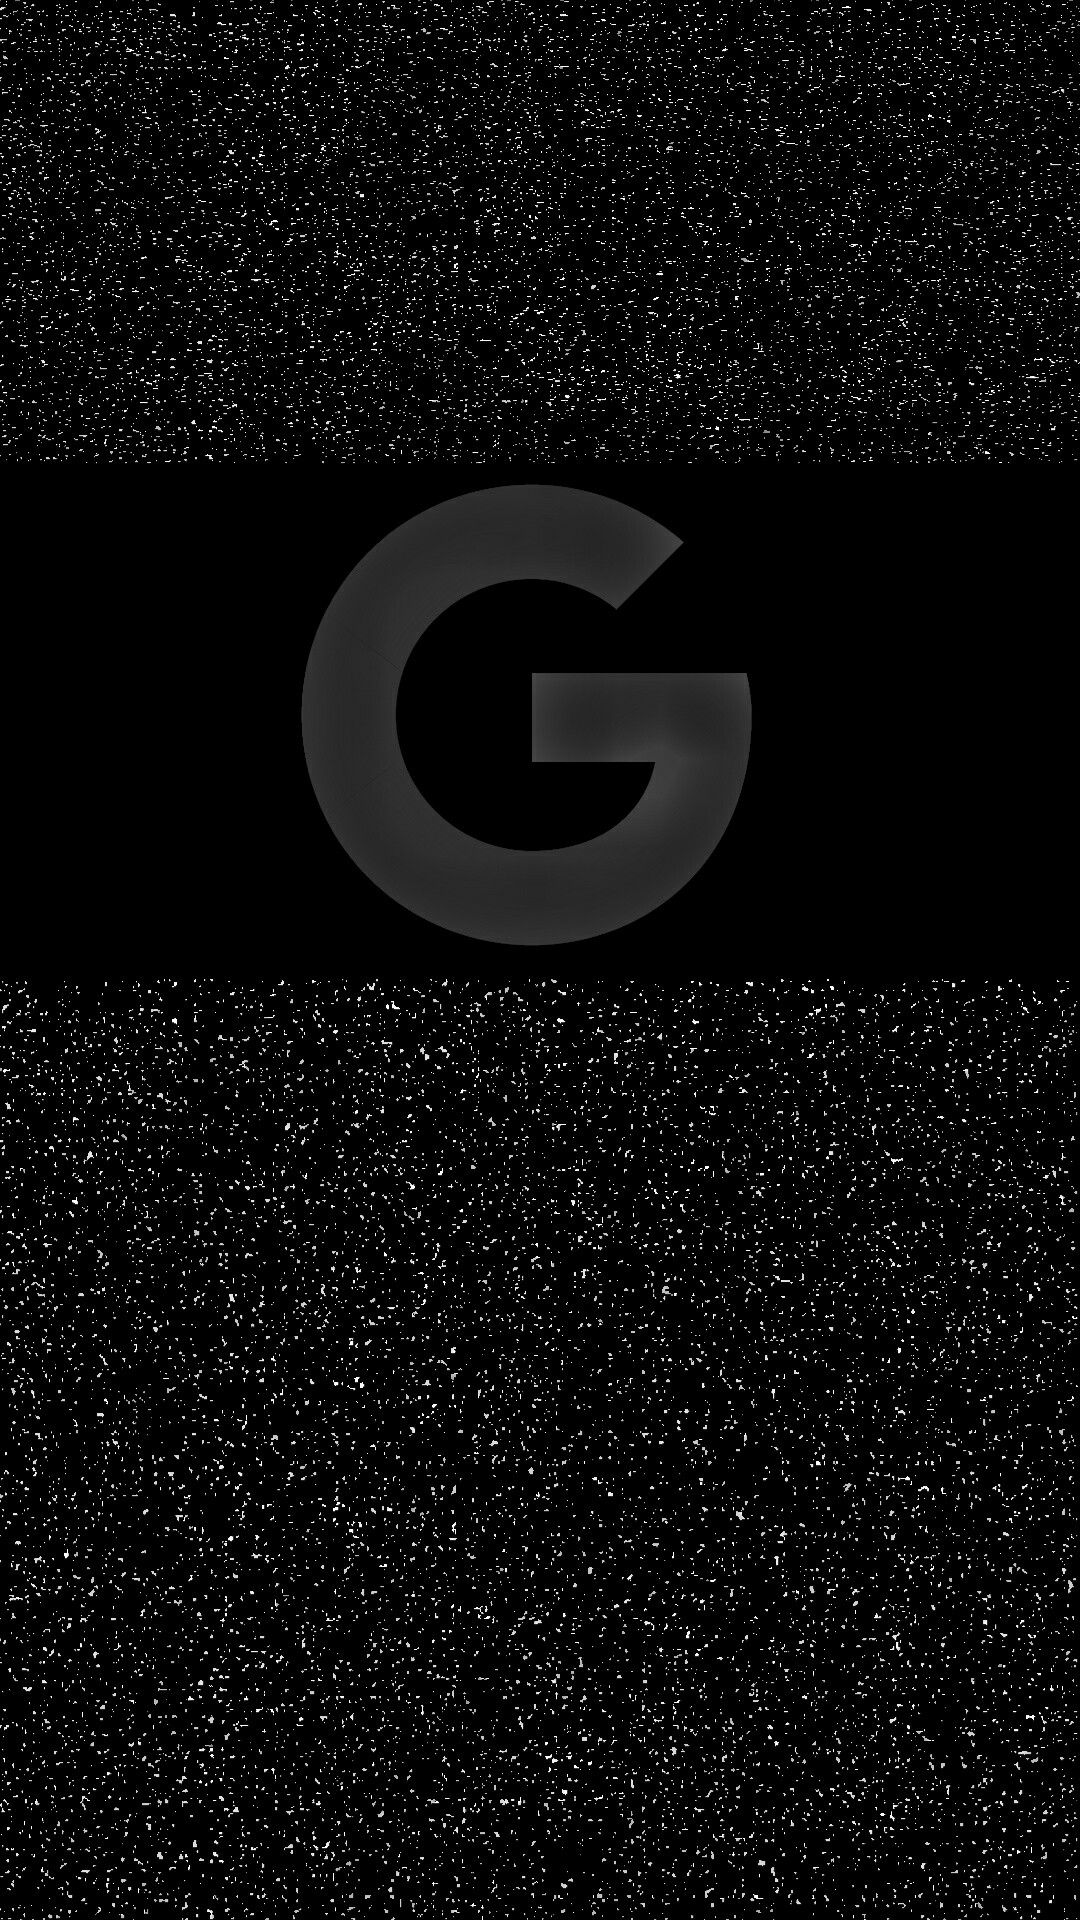 Pin by Gerly Feliciano on Iphone Wallpaper Google pixel